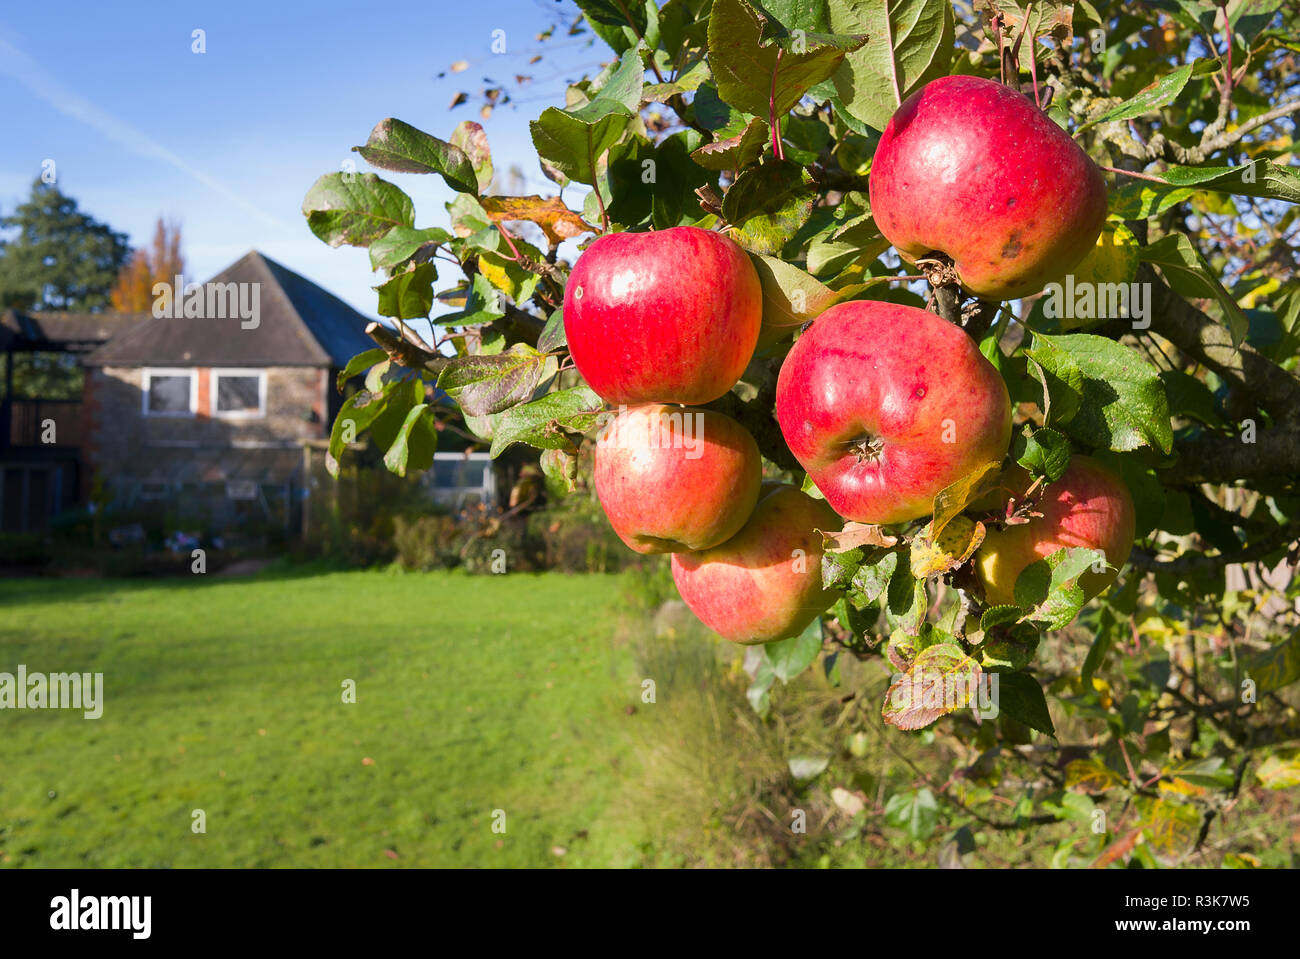 Rosy red ripe apples growing on a tree in an English garden in November. Ready for picking and storing over winter. Variety is multi-purpose - Stock Image